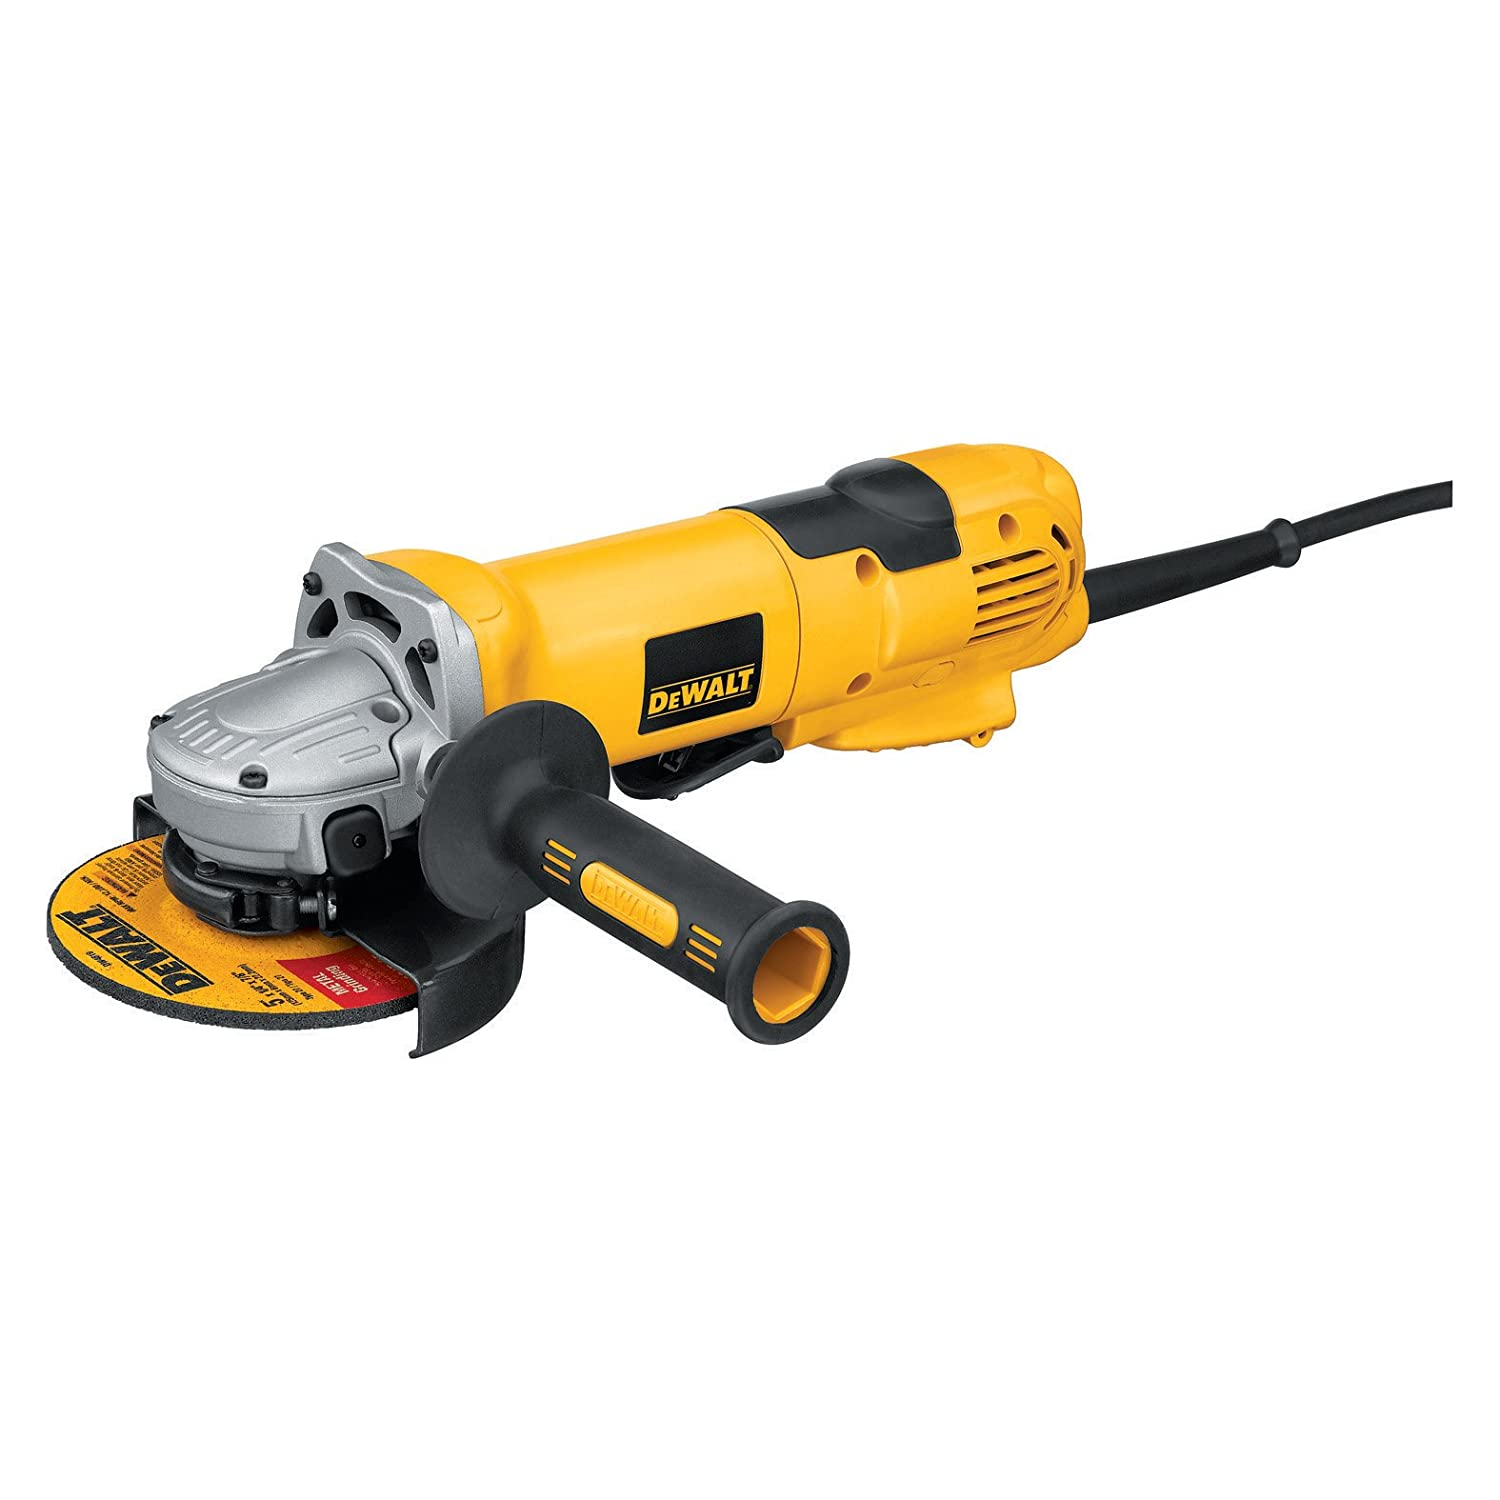 DEWALT D28144N 6-Inch High Performance Angle Grinder with No Lock-On Paddle Switch